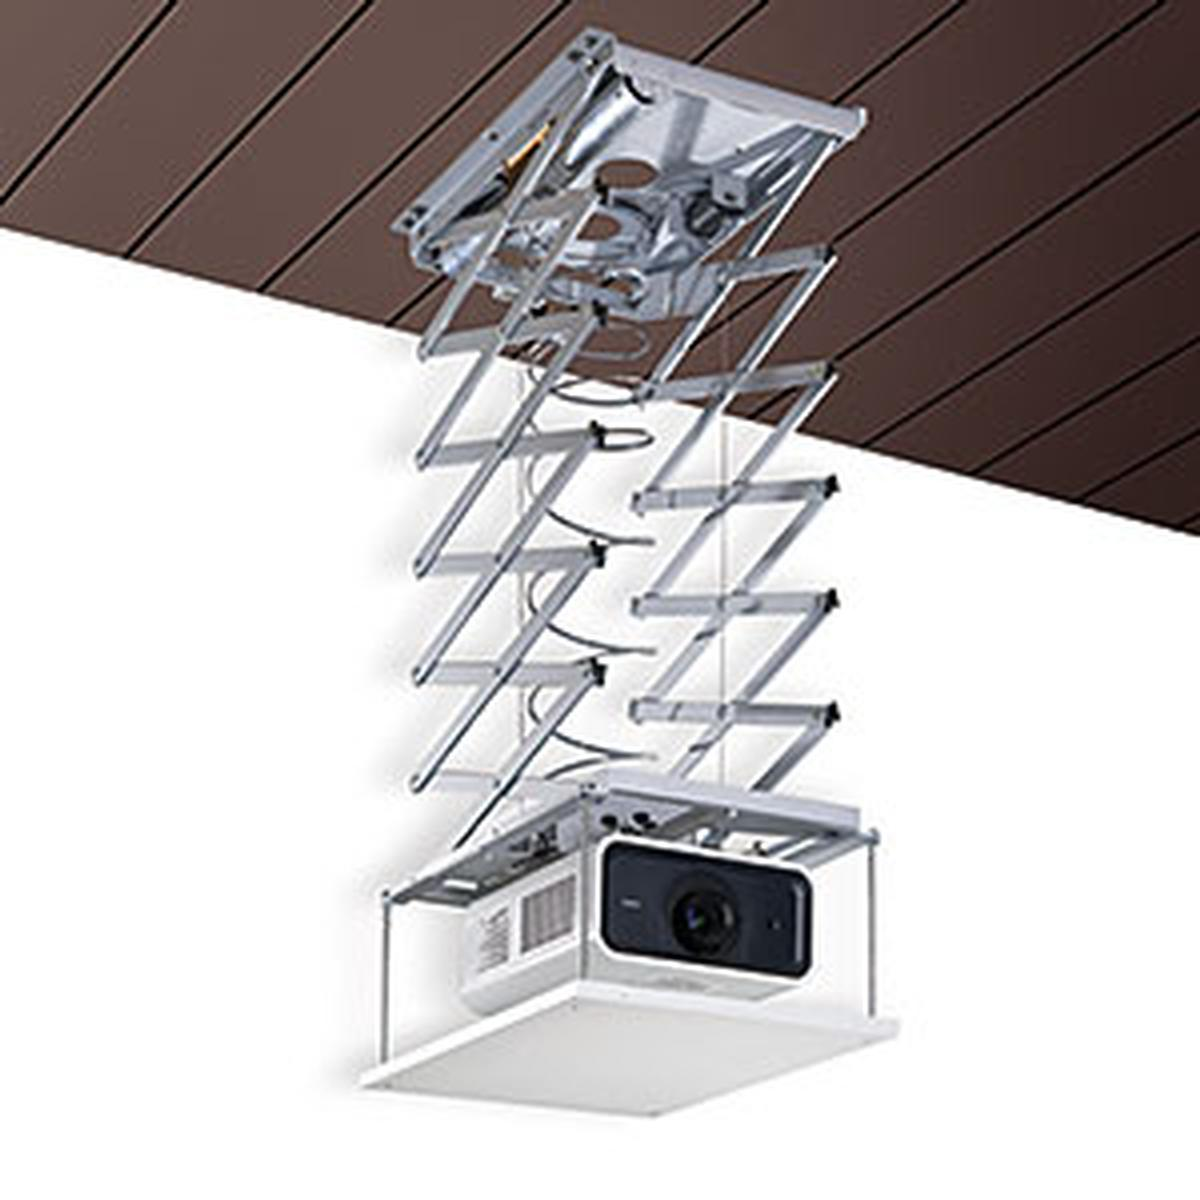 tulum co systems ceiling prism permanent ceilings lift smsender